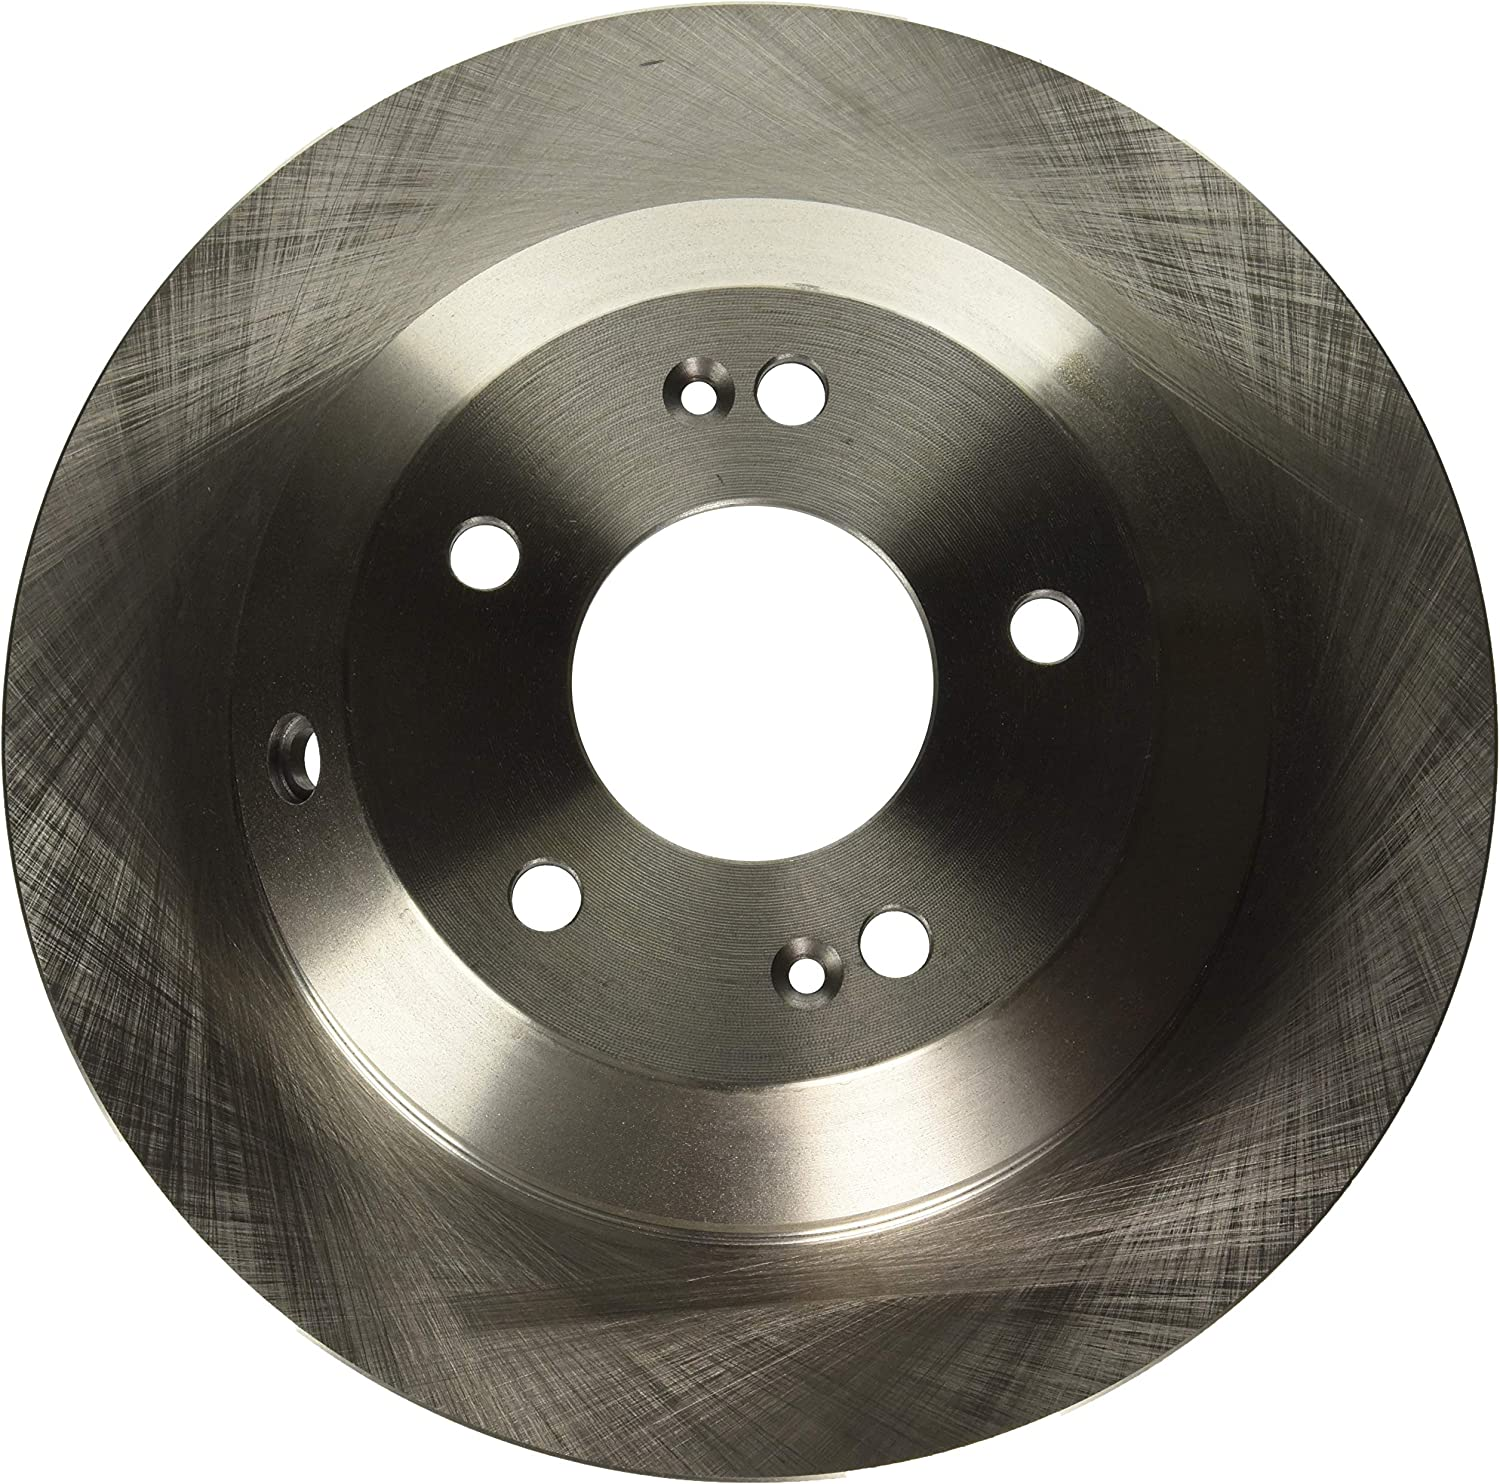 Raybestos 980783FZN Rust Prevention Technology Coated Rotor Dih Parking Brake